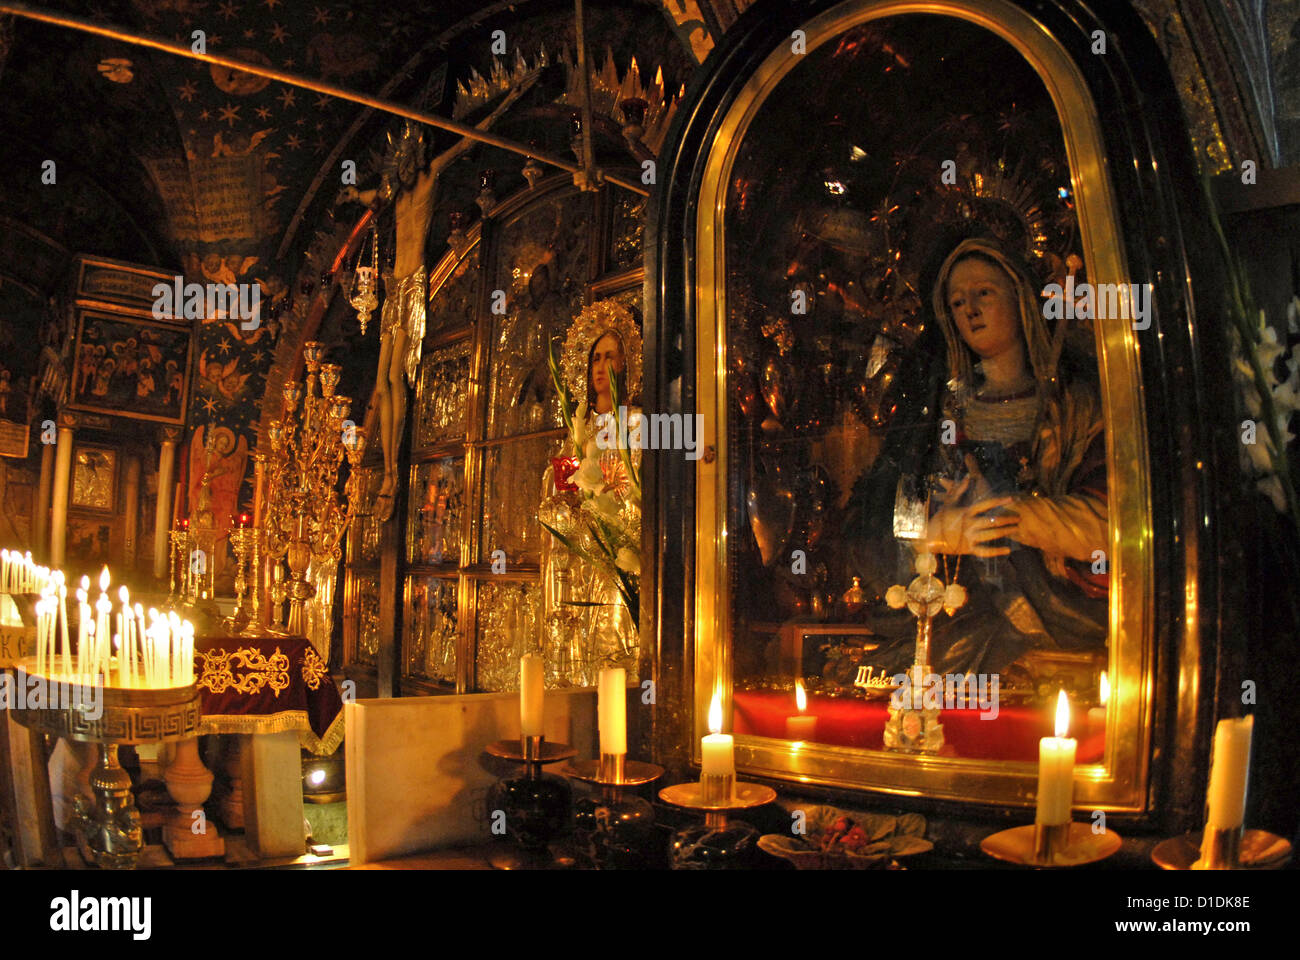 Altar of Our Lady of Sorrows, Church of the Holy Sepulcher Jerusalem collection Stock Photo